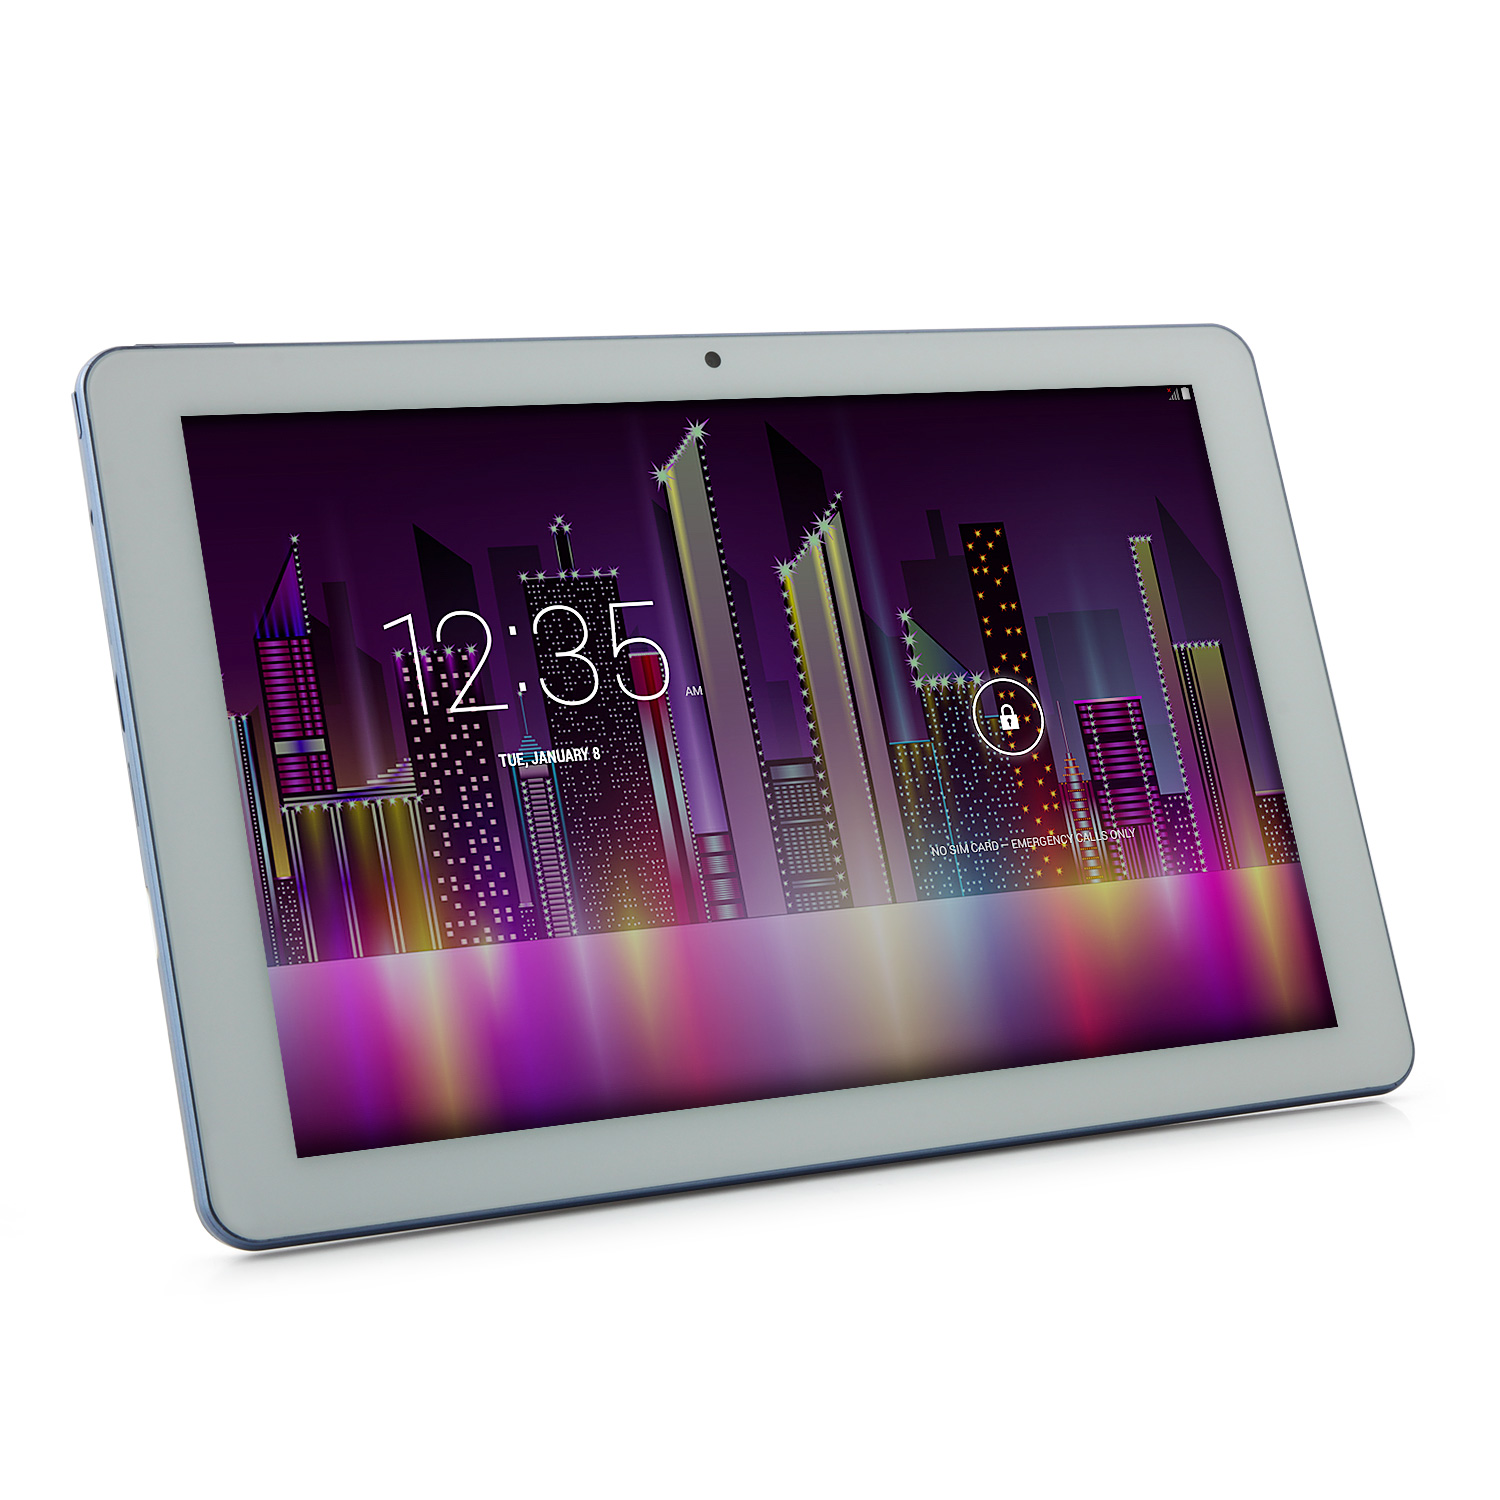 HUU H10 SOUL 3G Tablet PC MTK8382 Quad Core 10.1 Inch Android 4.4 IPS 1GB 16GB White